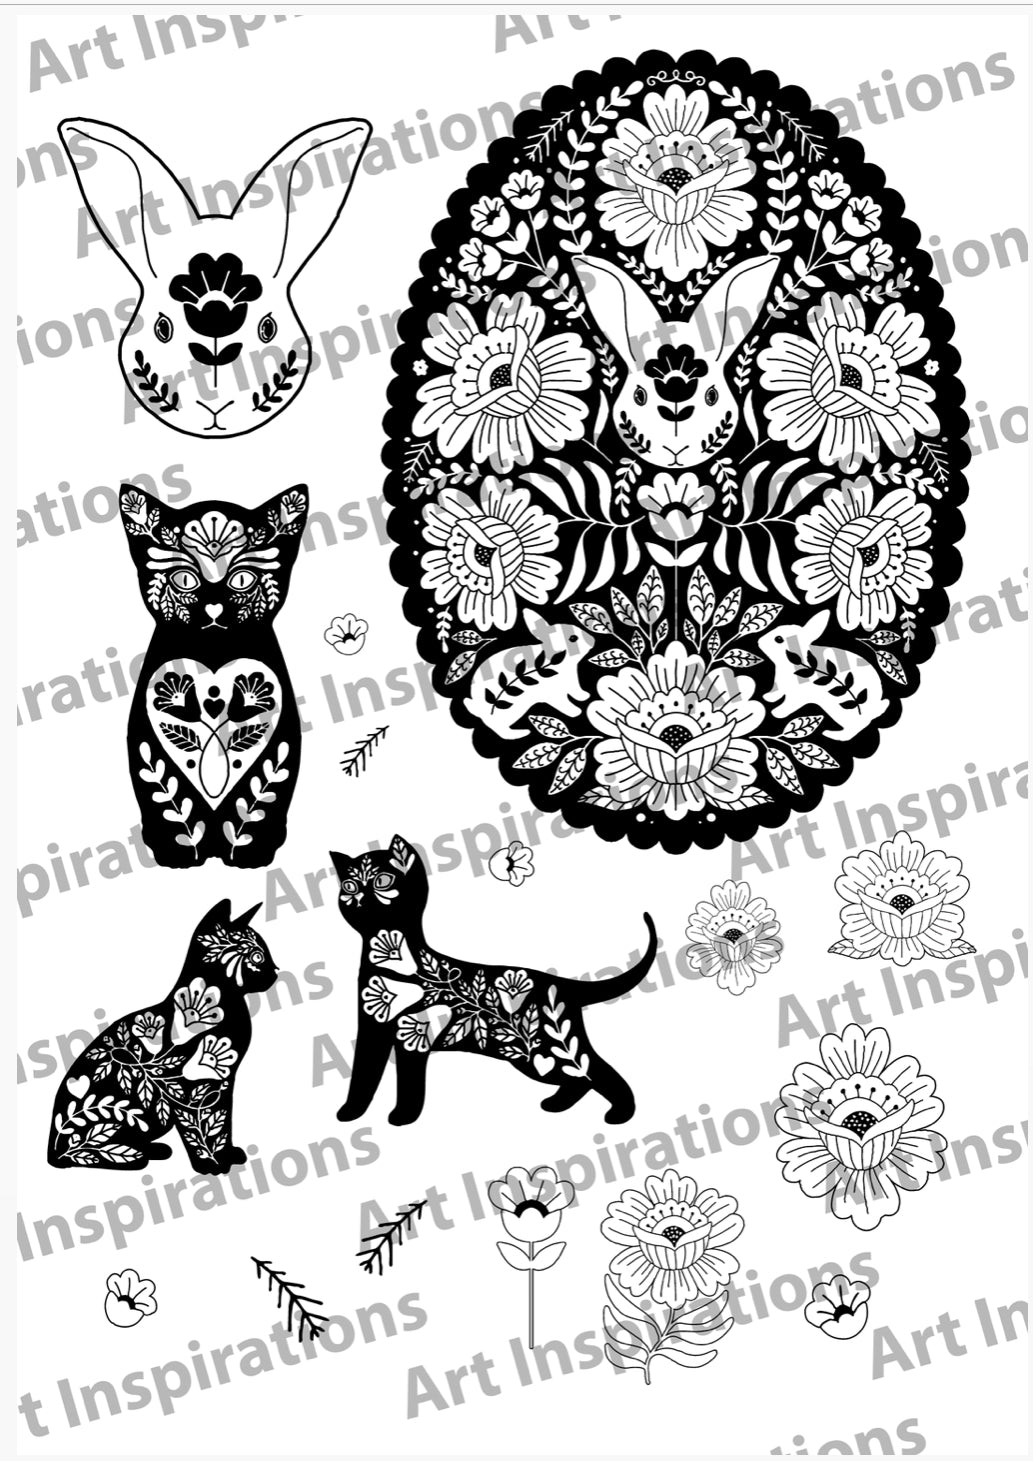 Art Inspirations by Wensdi Made A5 Clear Stamp Sheet - Lucky Rabbit and Cat - 17 Stamps